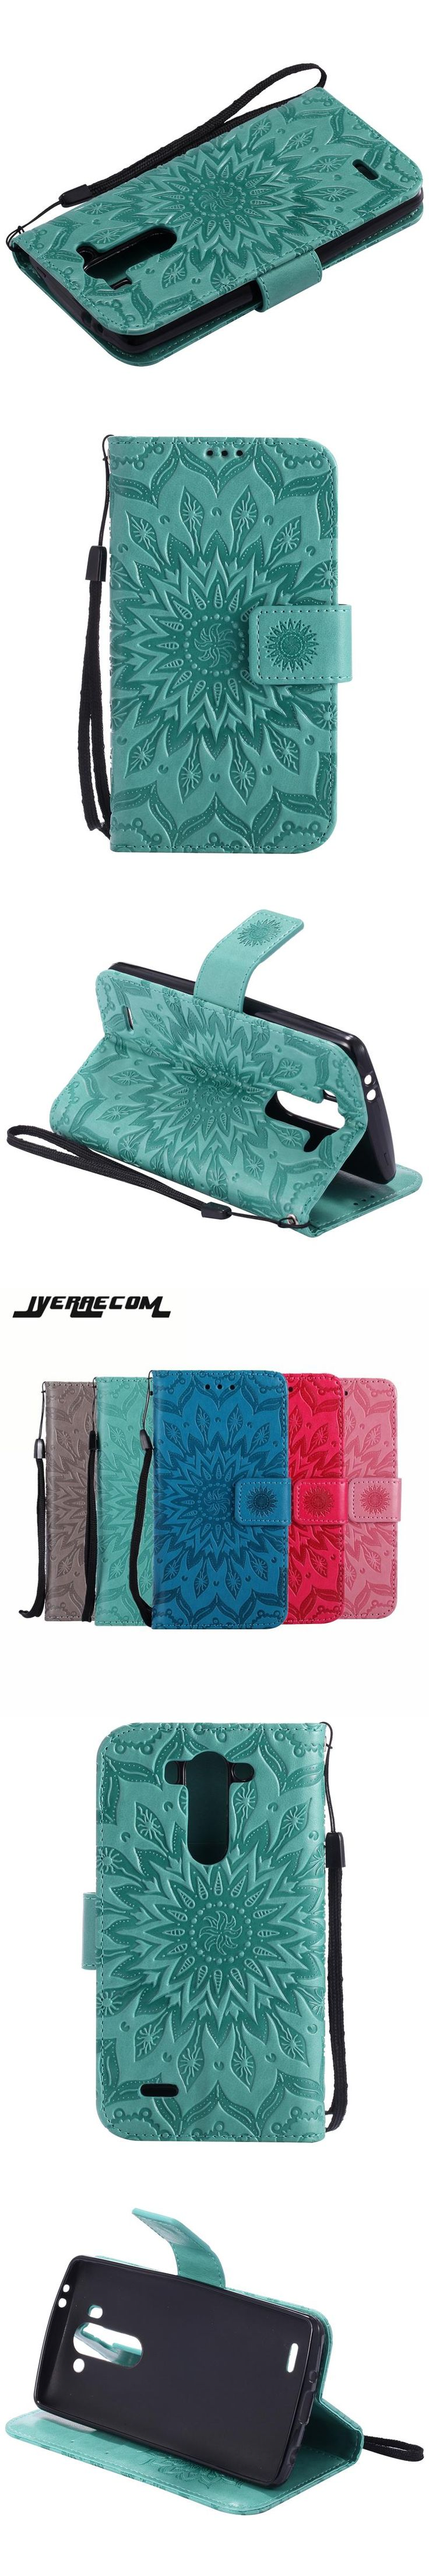 Coque Sunflower Flip Wallet Case For LG G3 S Beat mini G3S PU Leather+Silicon Cover For LG G3 vigor D722 d724 Case Phone